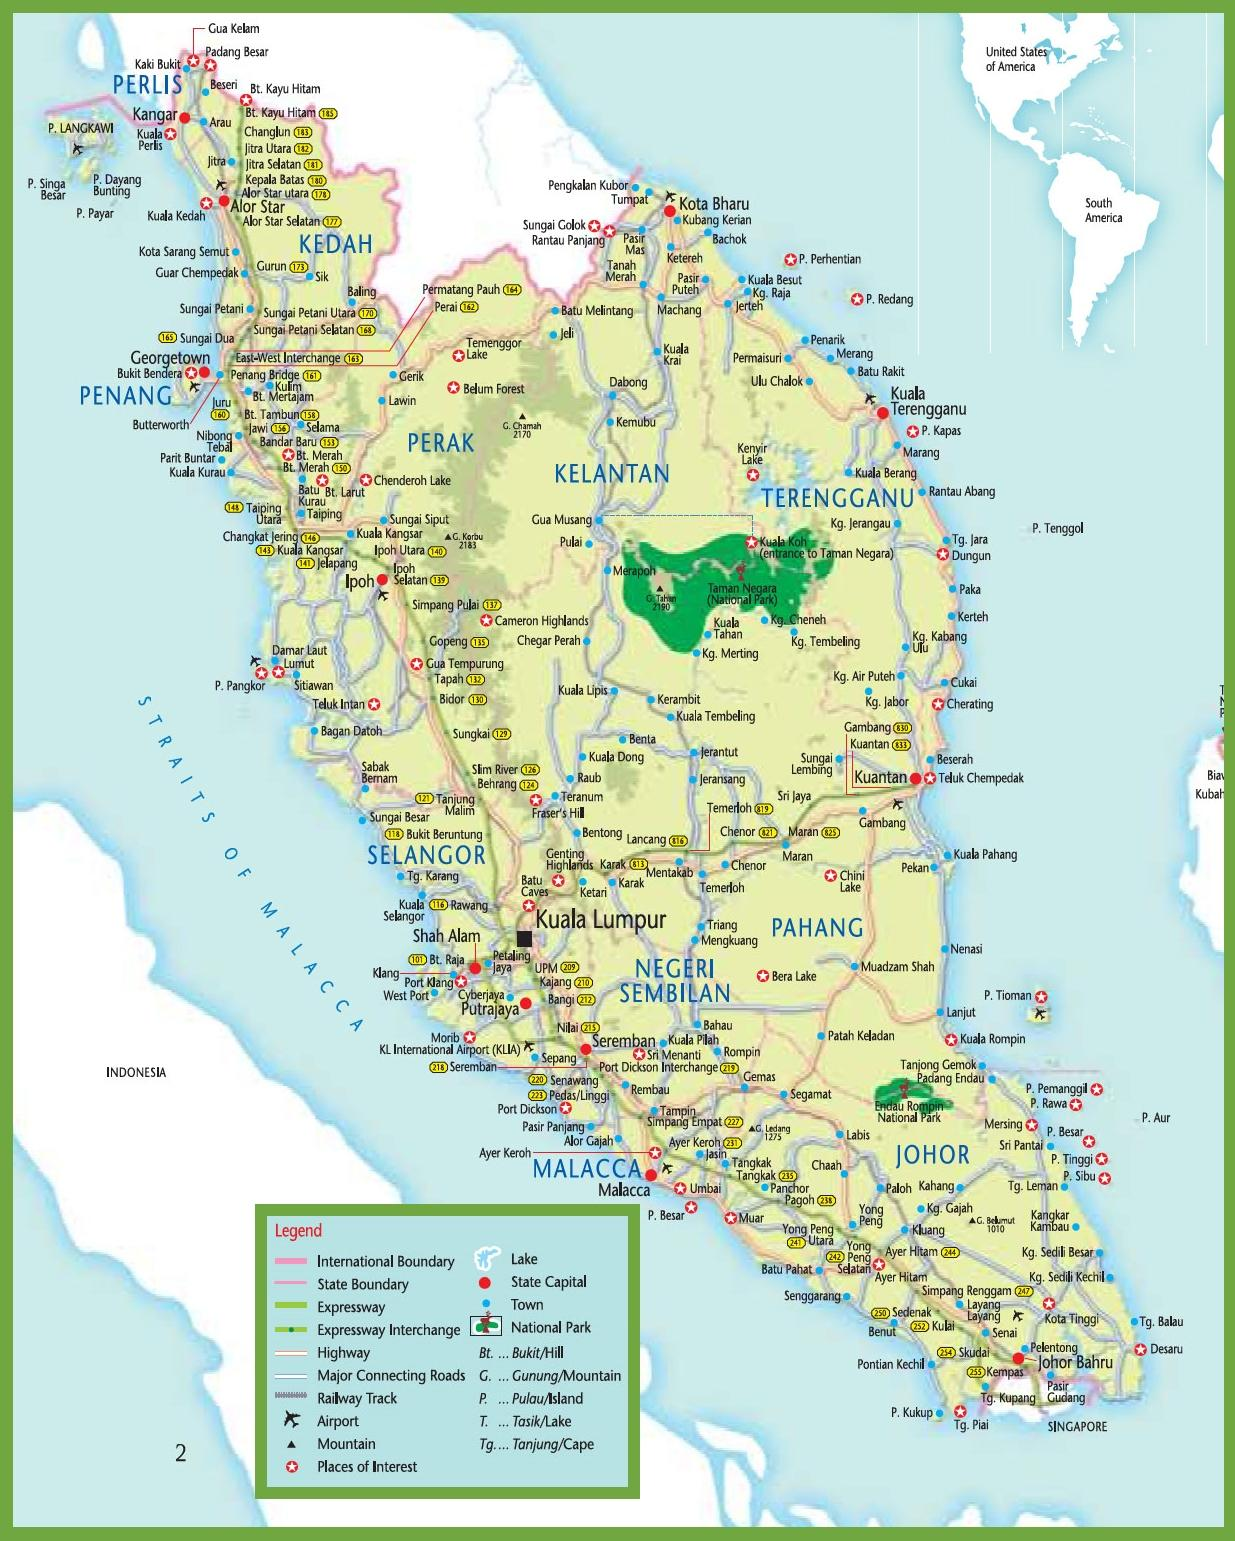 Mrt Map Malaysia Mrt Karte In Malaysia Sud Ost Asien Asien